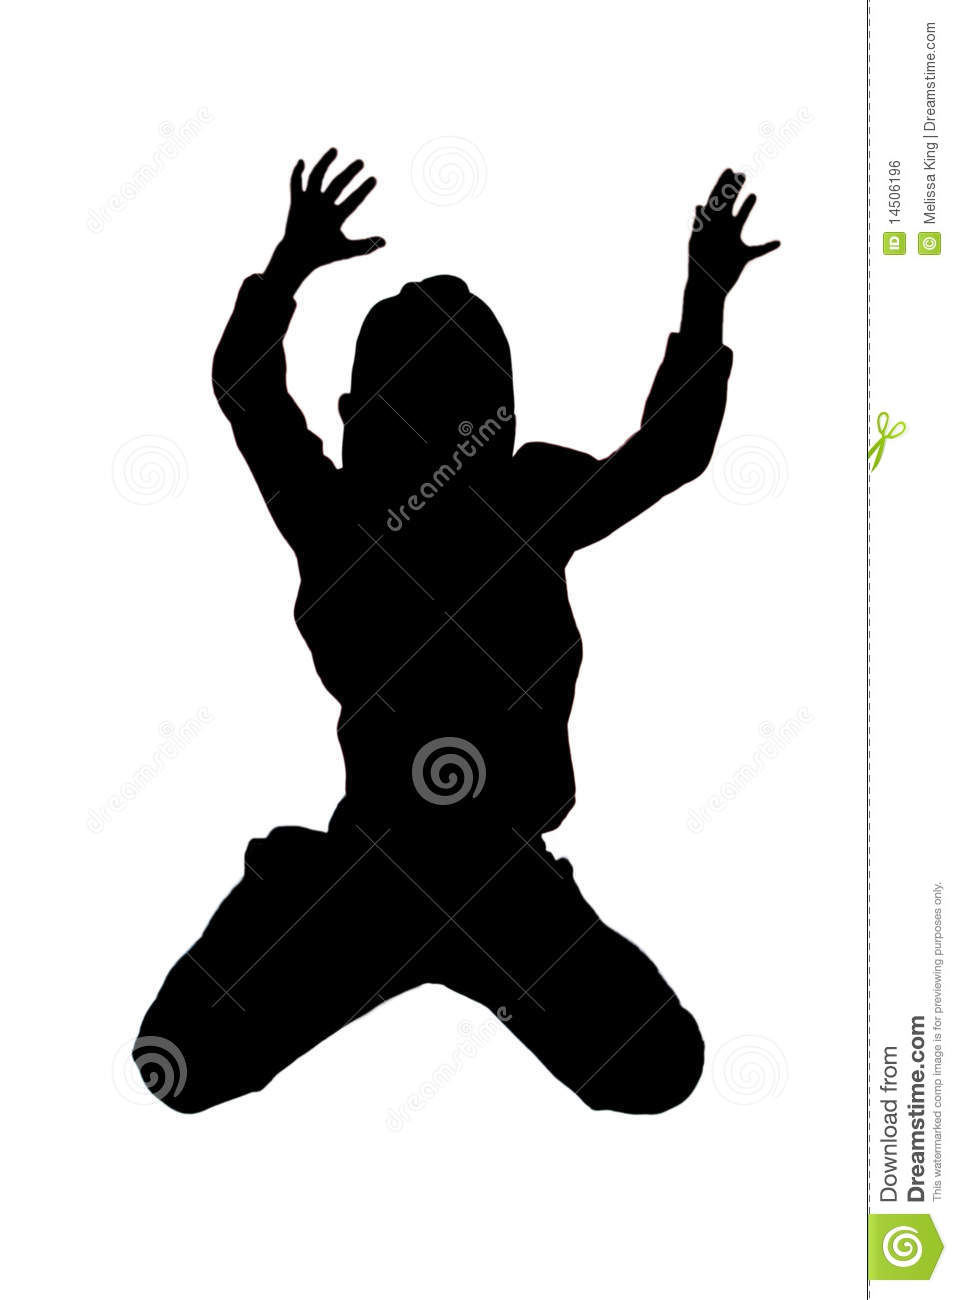 Royalty Free Stock Image Falling Person Silhouette Image14506196 in addition Interact dataset gallery is tripping besides Woman Slips On Banana Peel And Sues together with E8 BB A2 E3 81 B6 likewise Loss Of Balance Is Leading Cause Of Falls. on woman tripping and falling